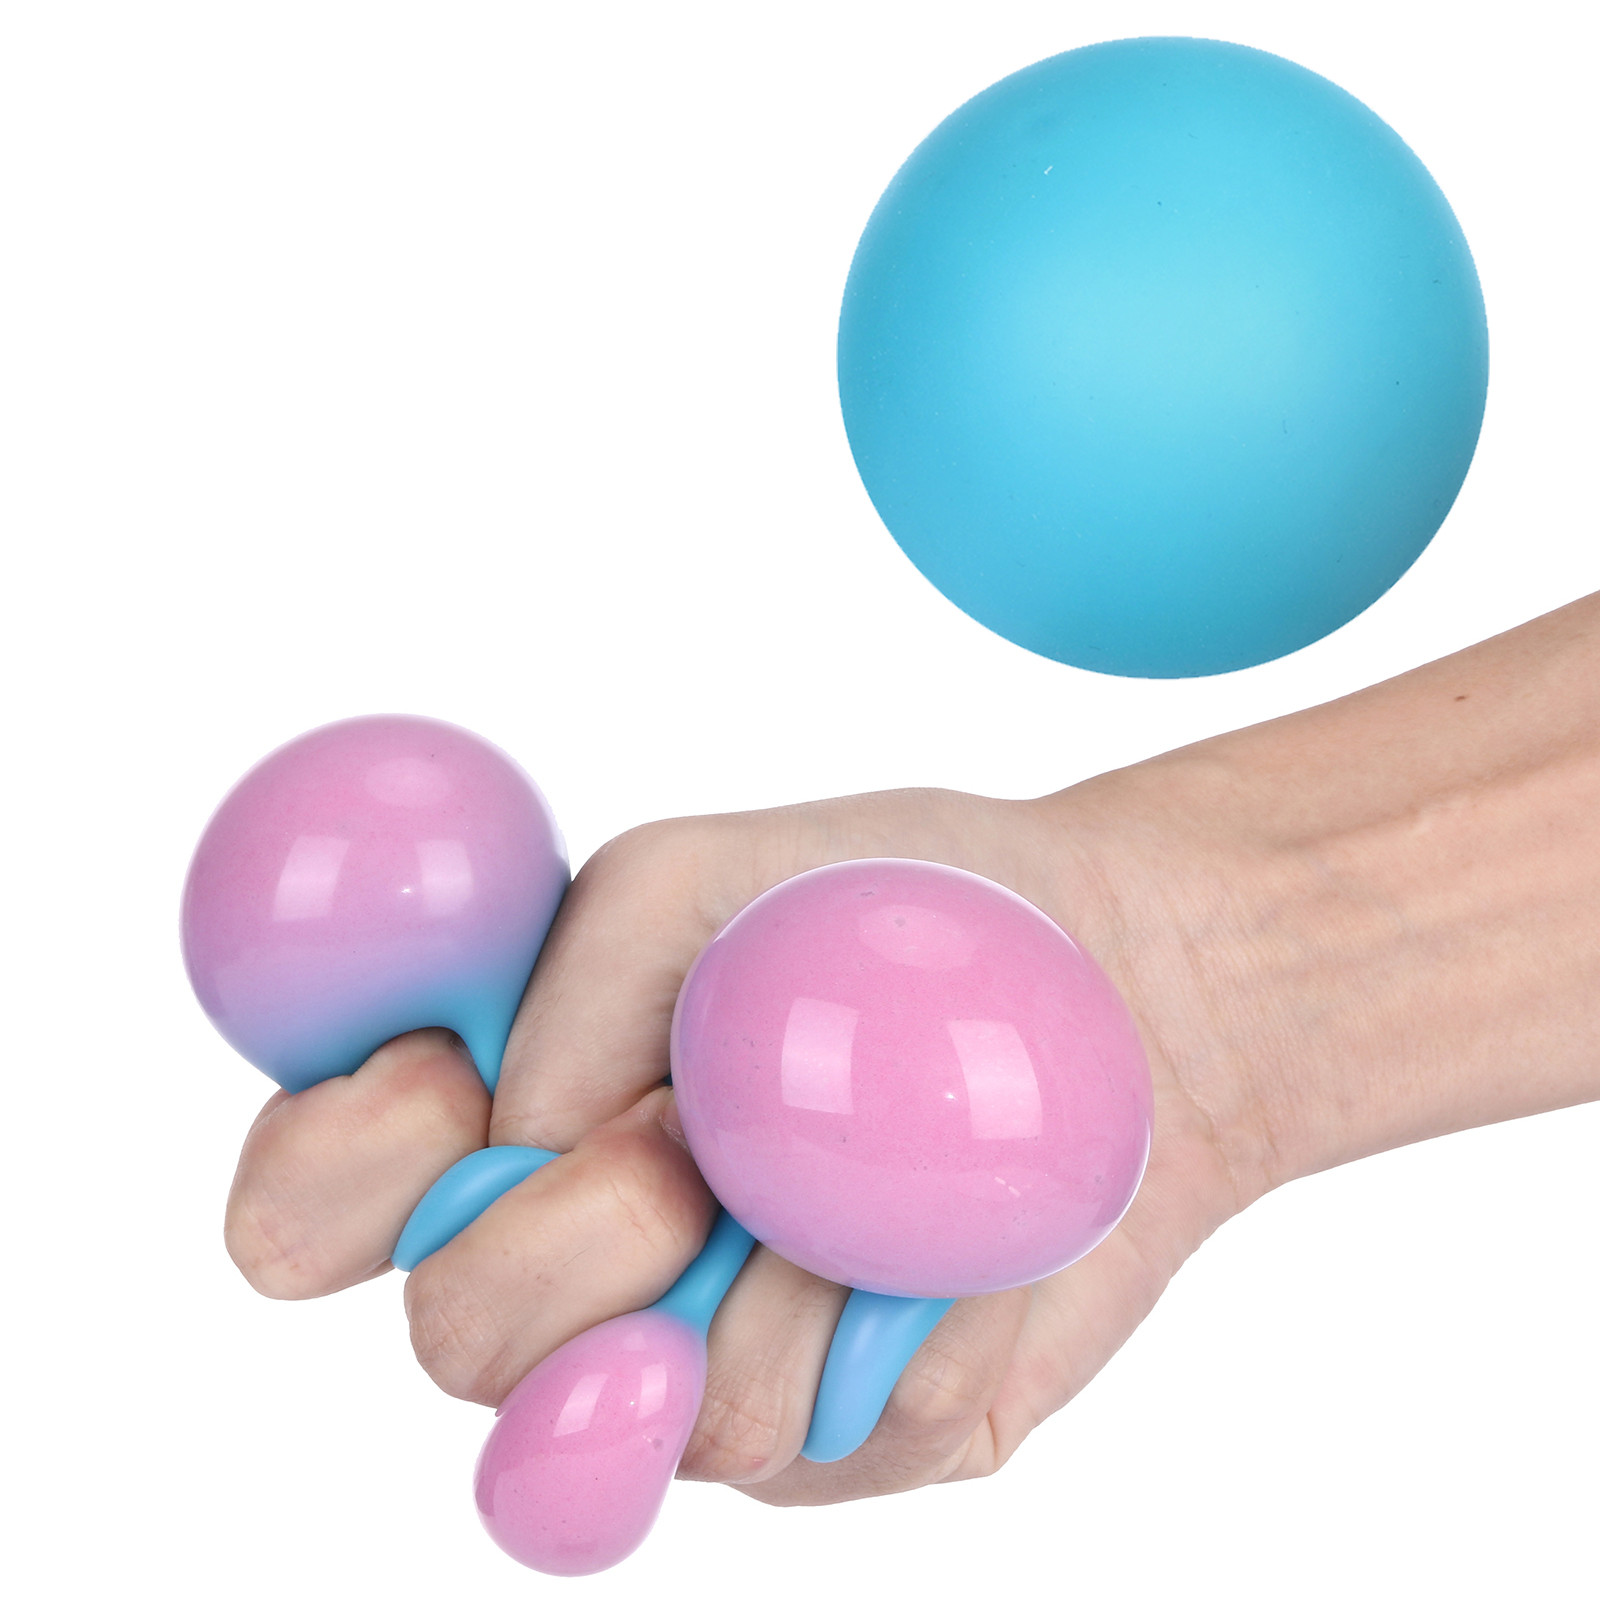 Stress Relief Squeezing Balls For Kids And Adults Toy Pressure Ball Toy Change Colour Antistress Squeeze Ball Decompression Toy img4